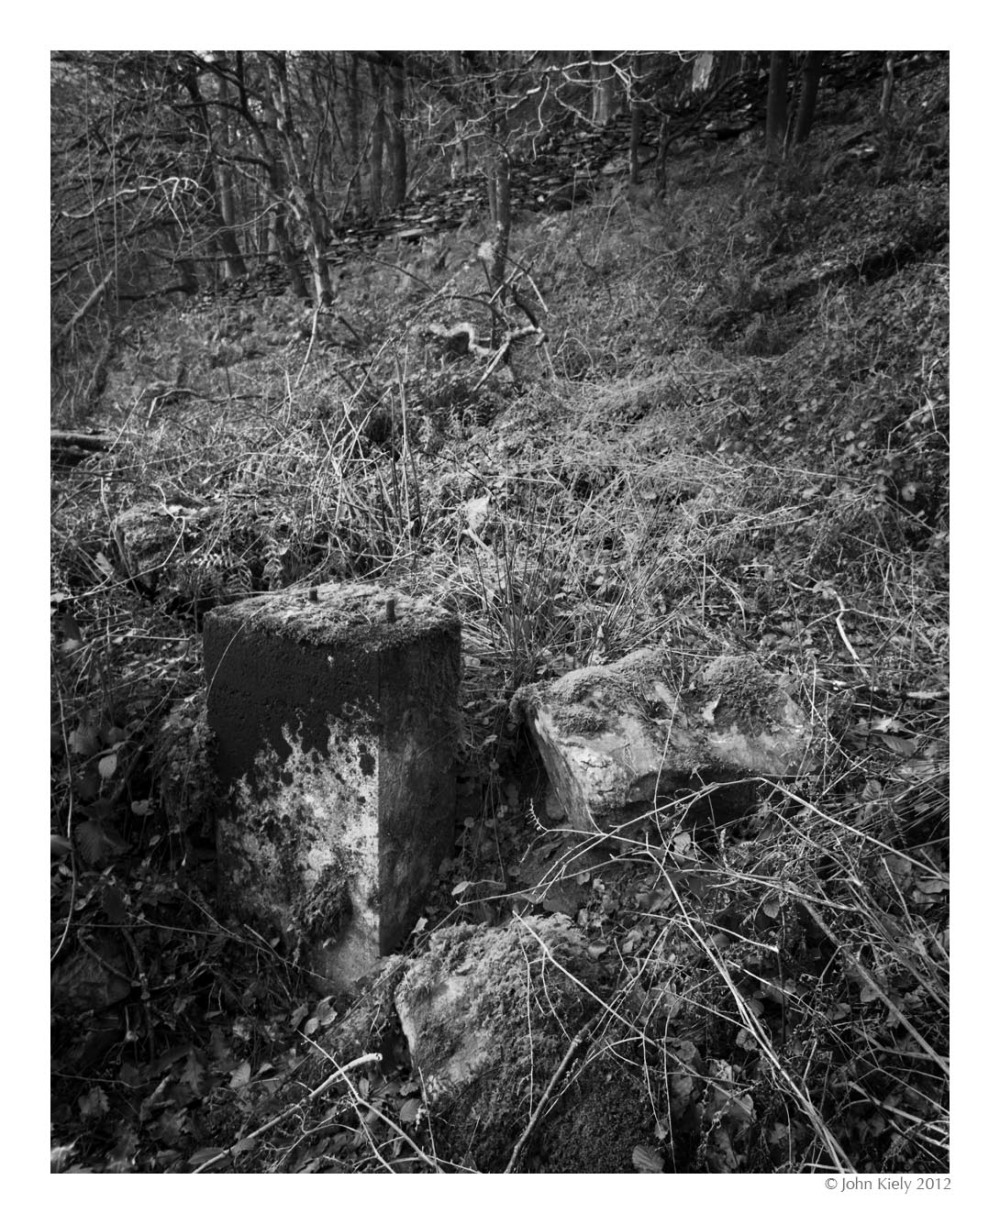 Cwm Bychan - a n abandoned copper mine area